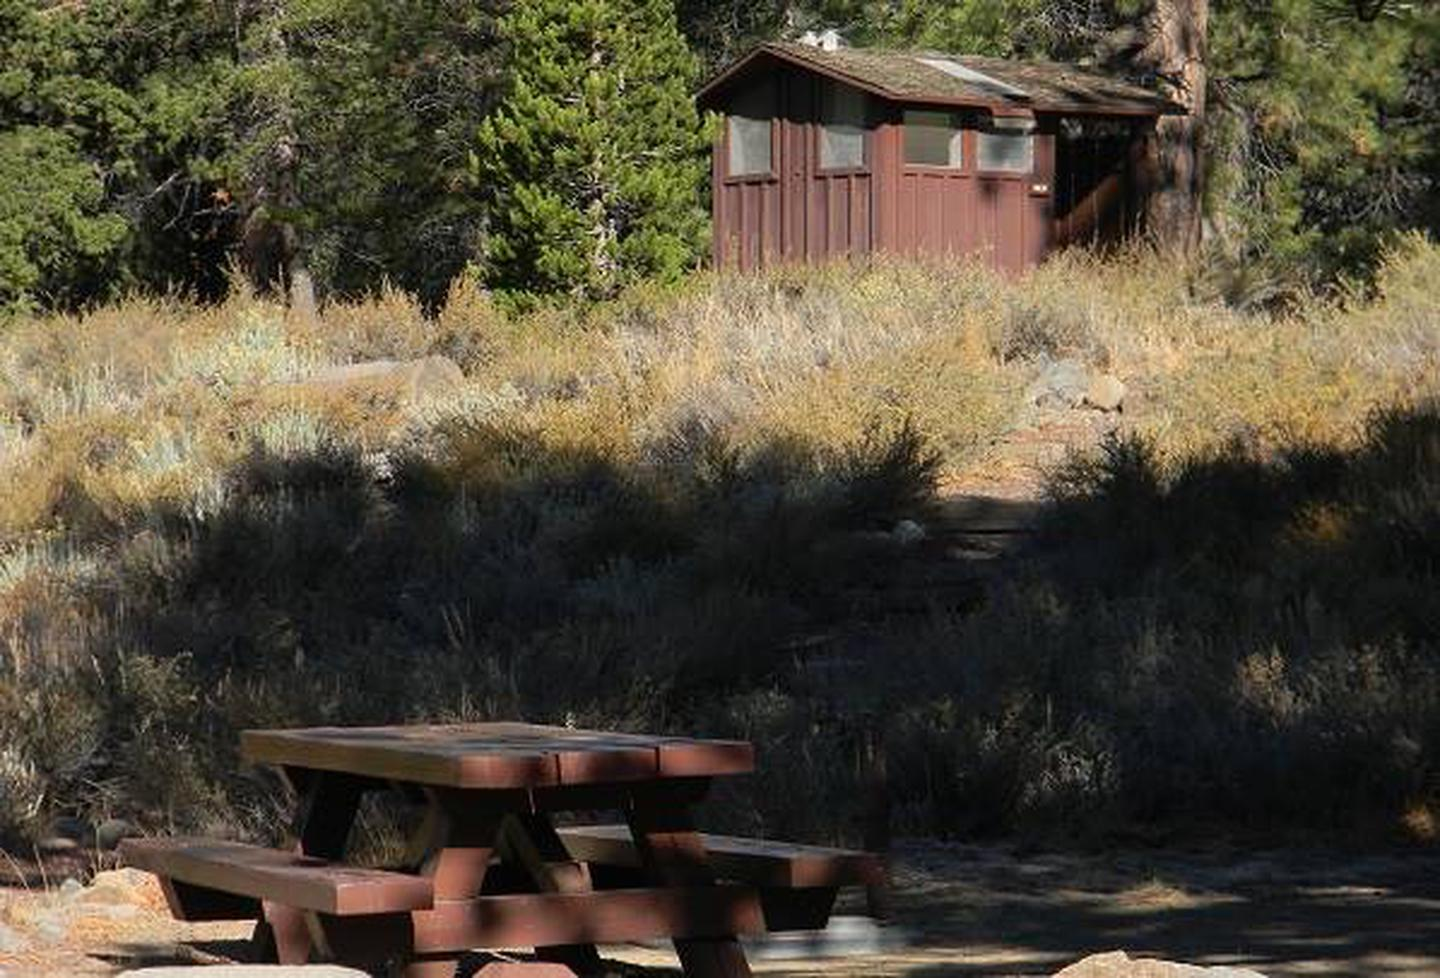 Picnic table in the shade within Lower Little Truckee CampgroundA typical campsite at Lower Little Truckee Campground.